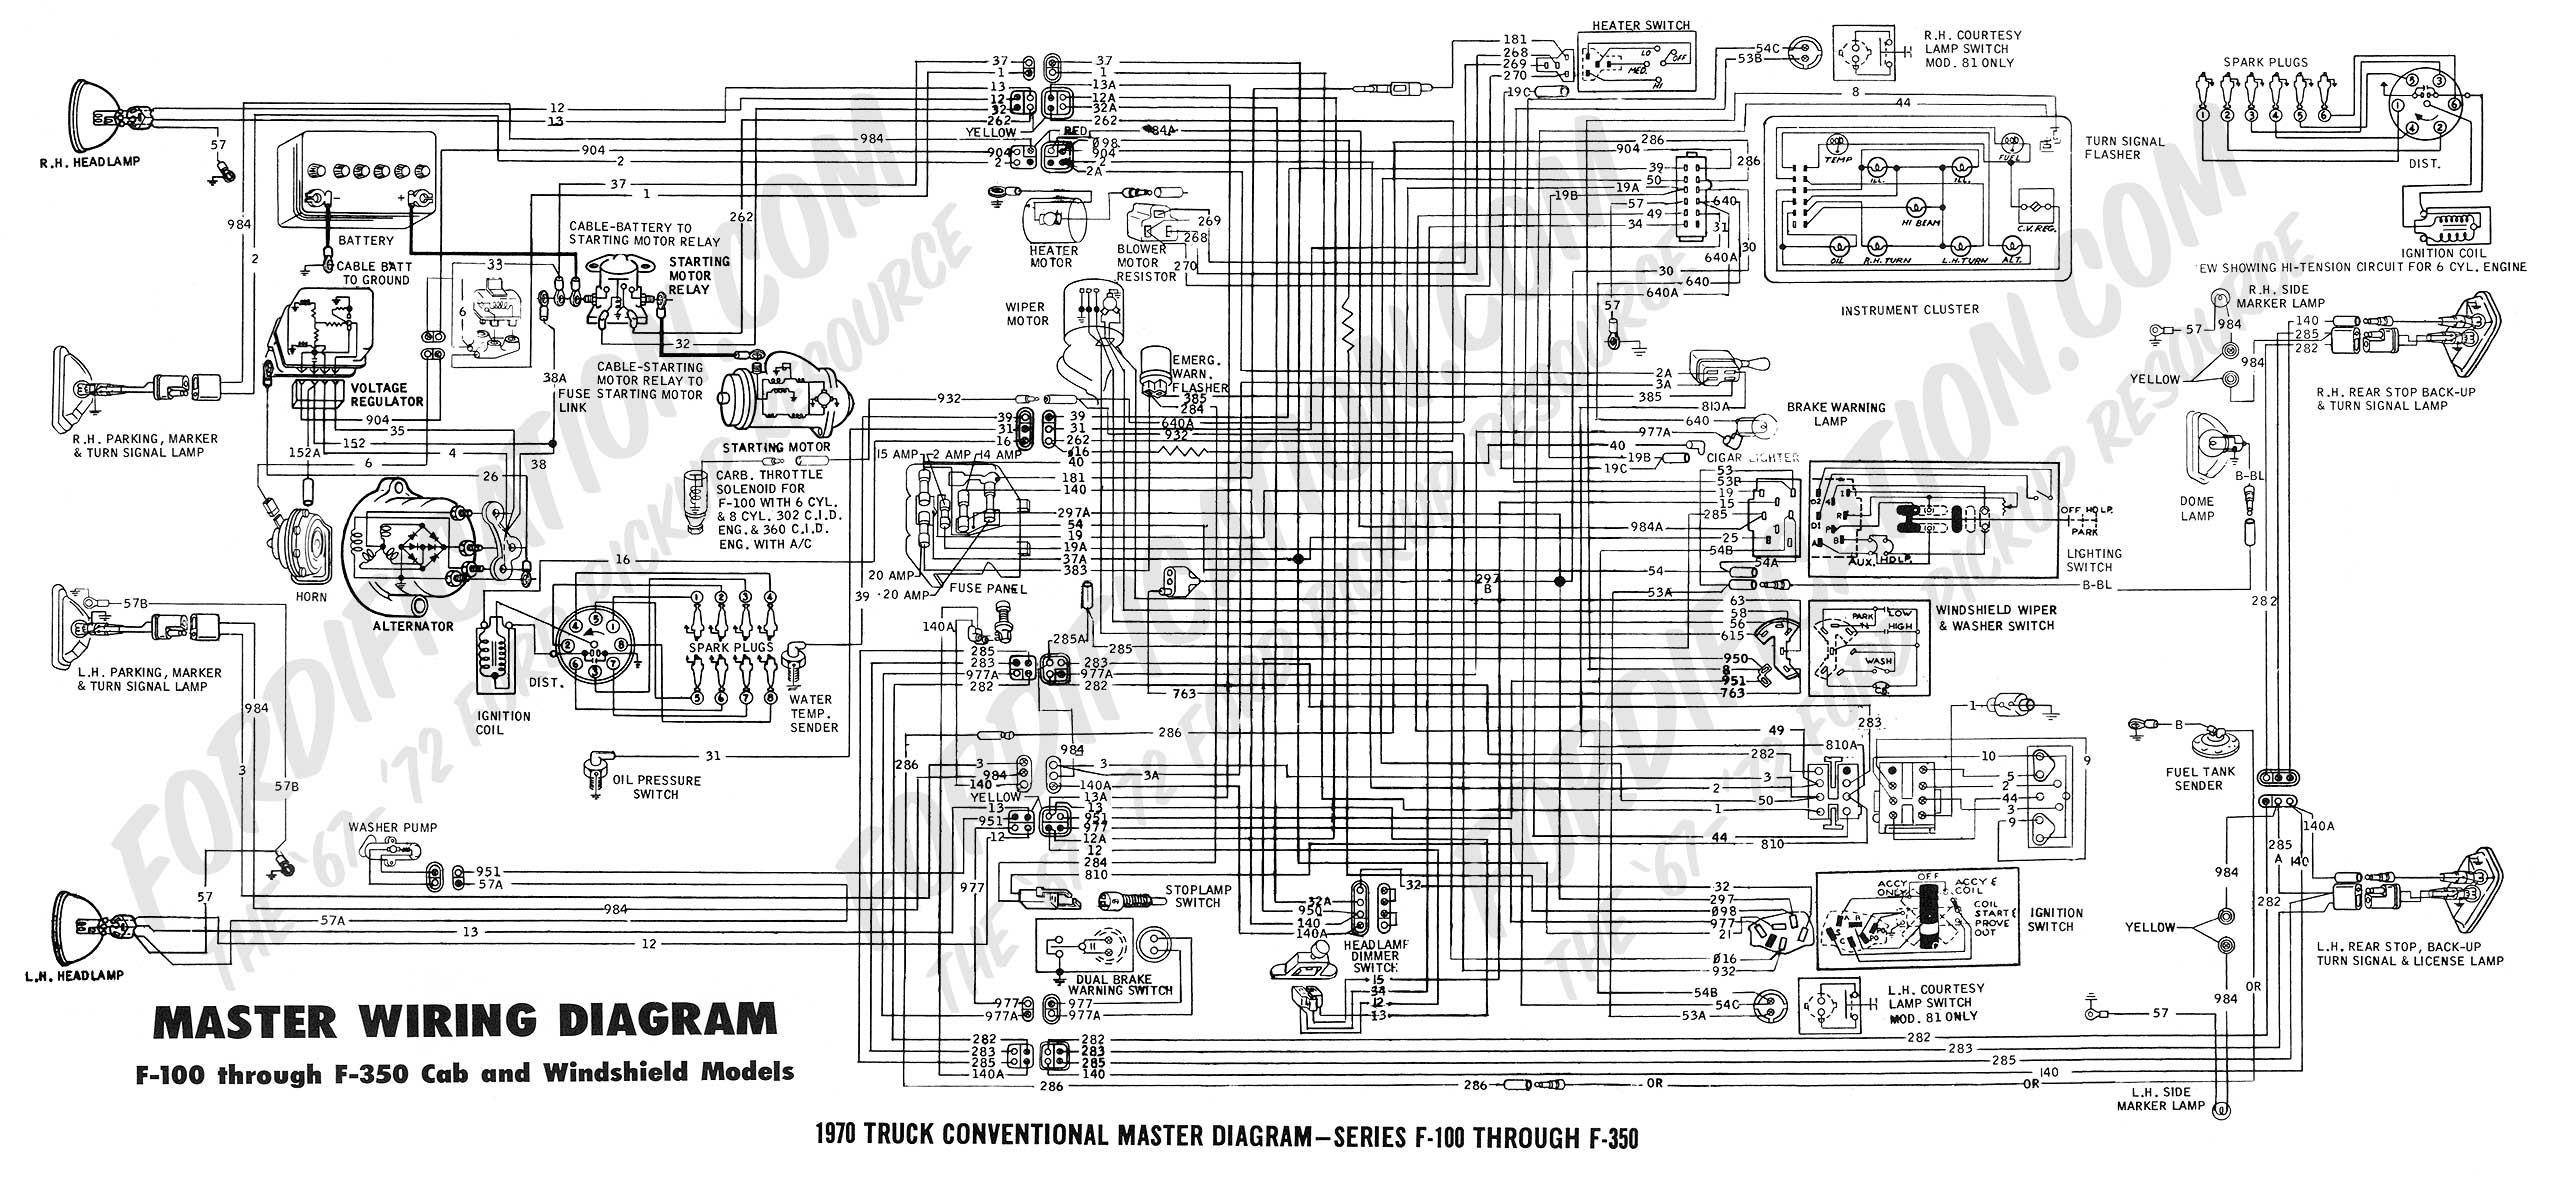 ford truck technical drawings and schematics   section h   wiring     f     f  master diagram